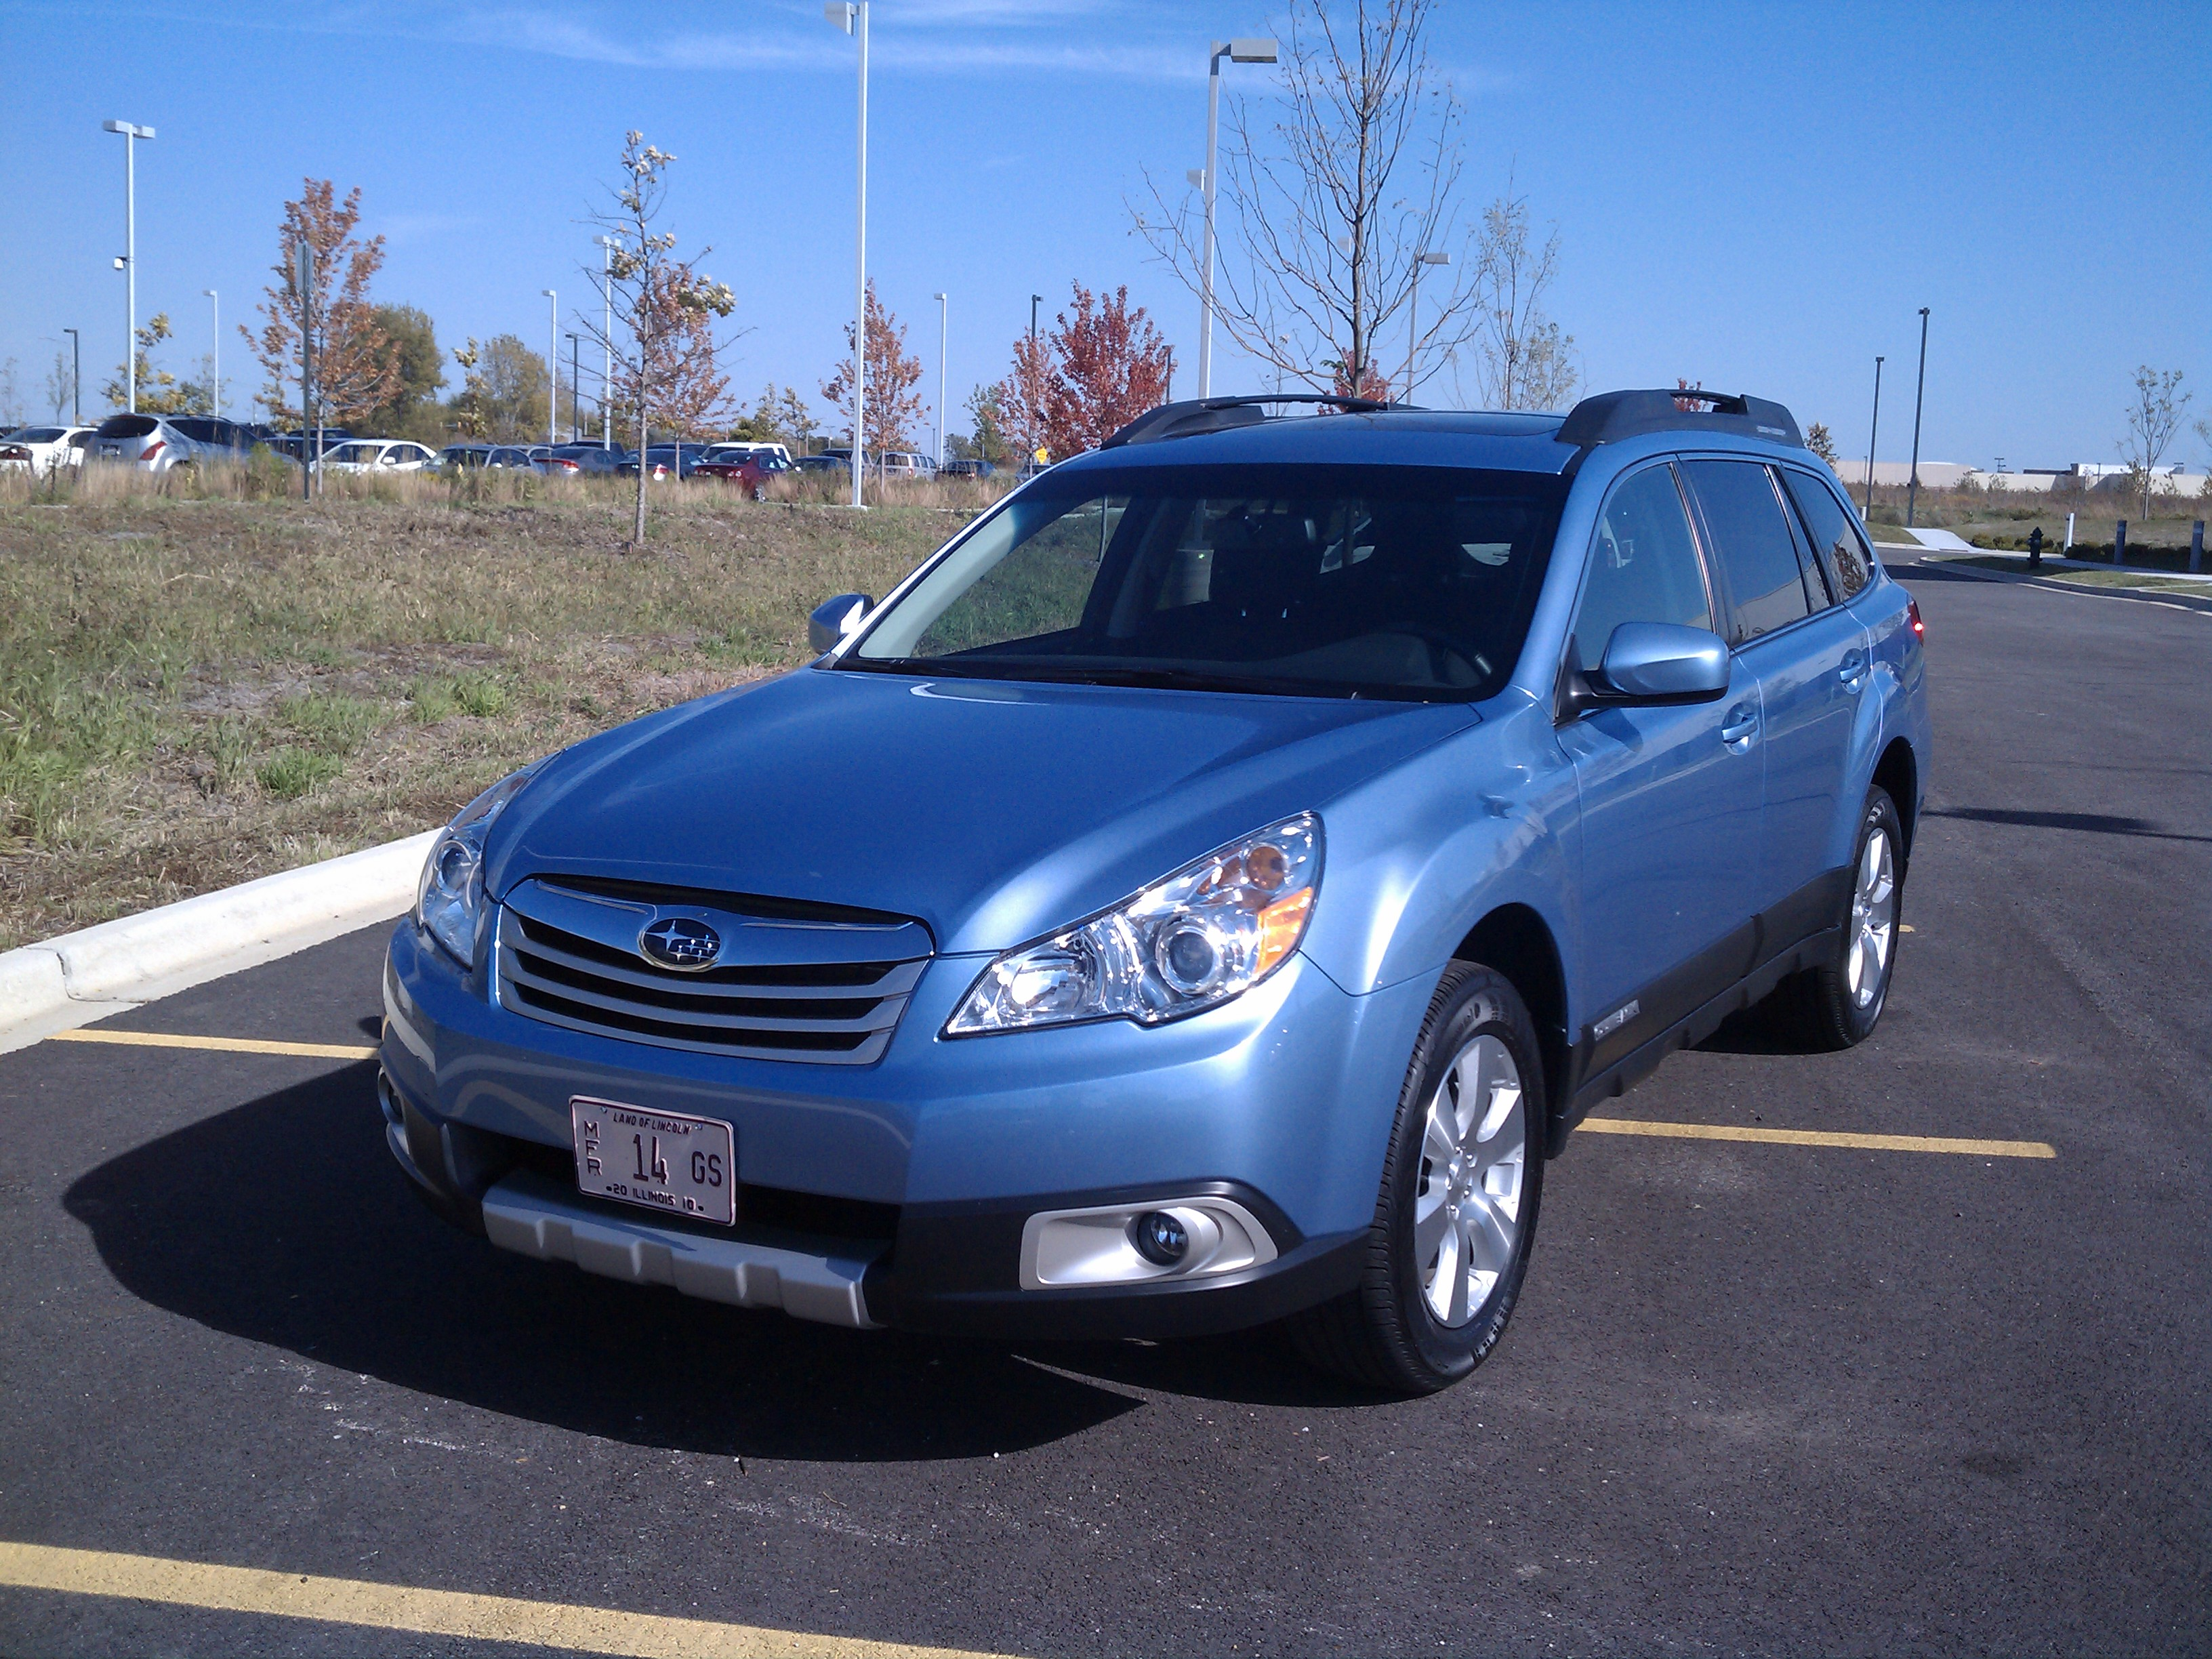 Subaru Outback Off Road >> 2011 Subaru Outback 3.6 Review - Top Speed